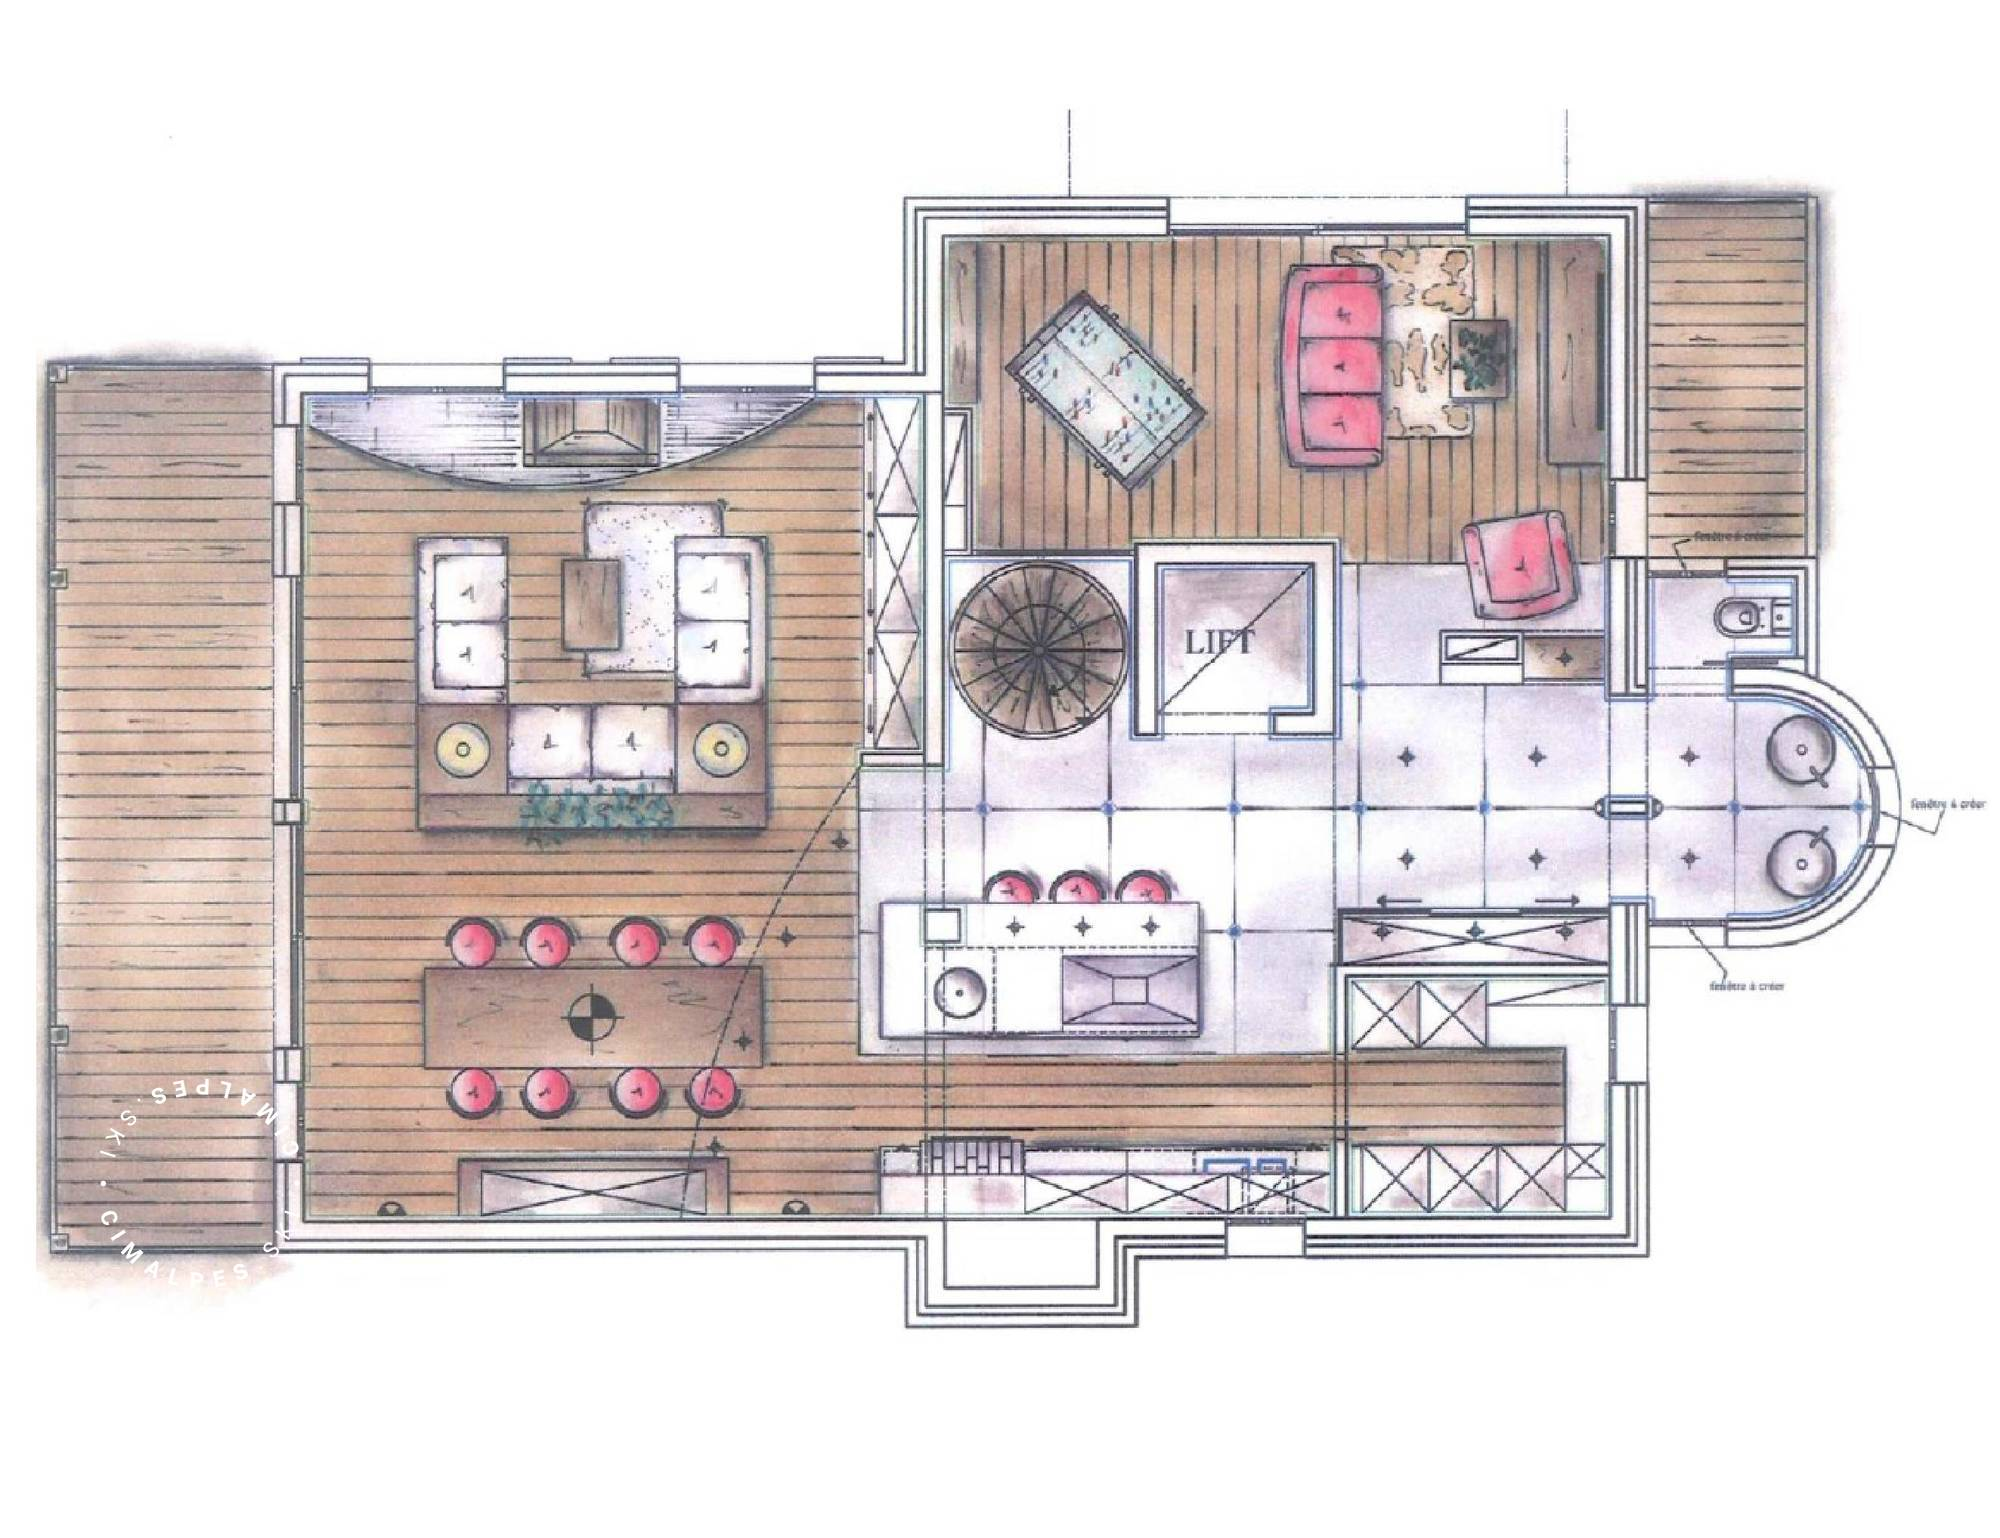 Chalet Eglantier Courchevel Floor Plan 3